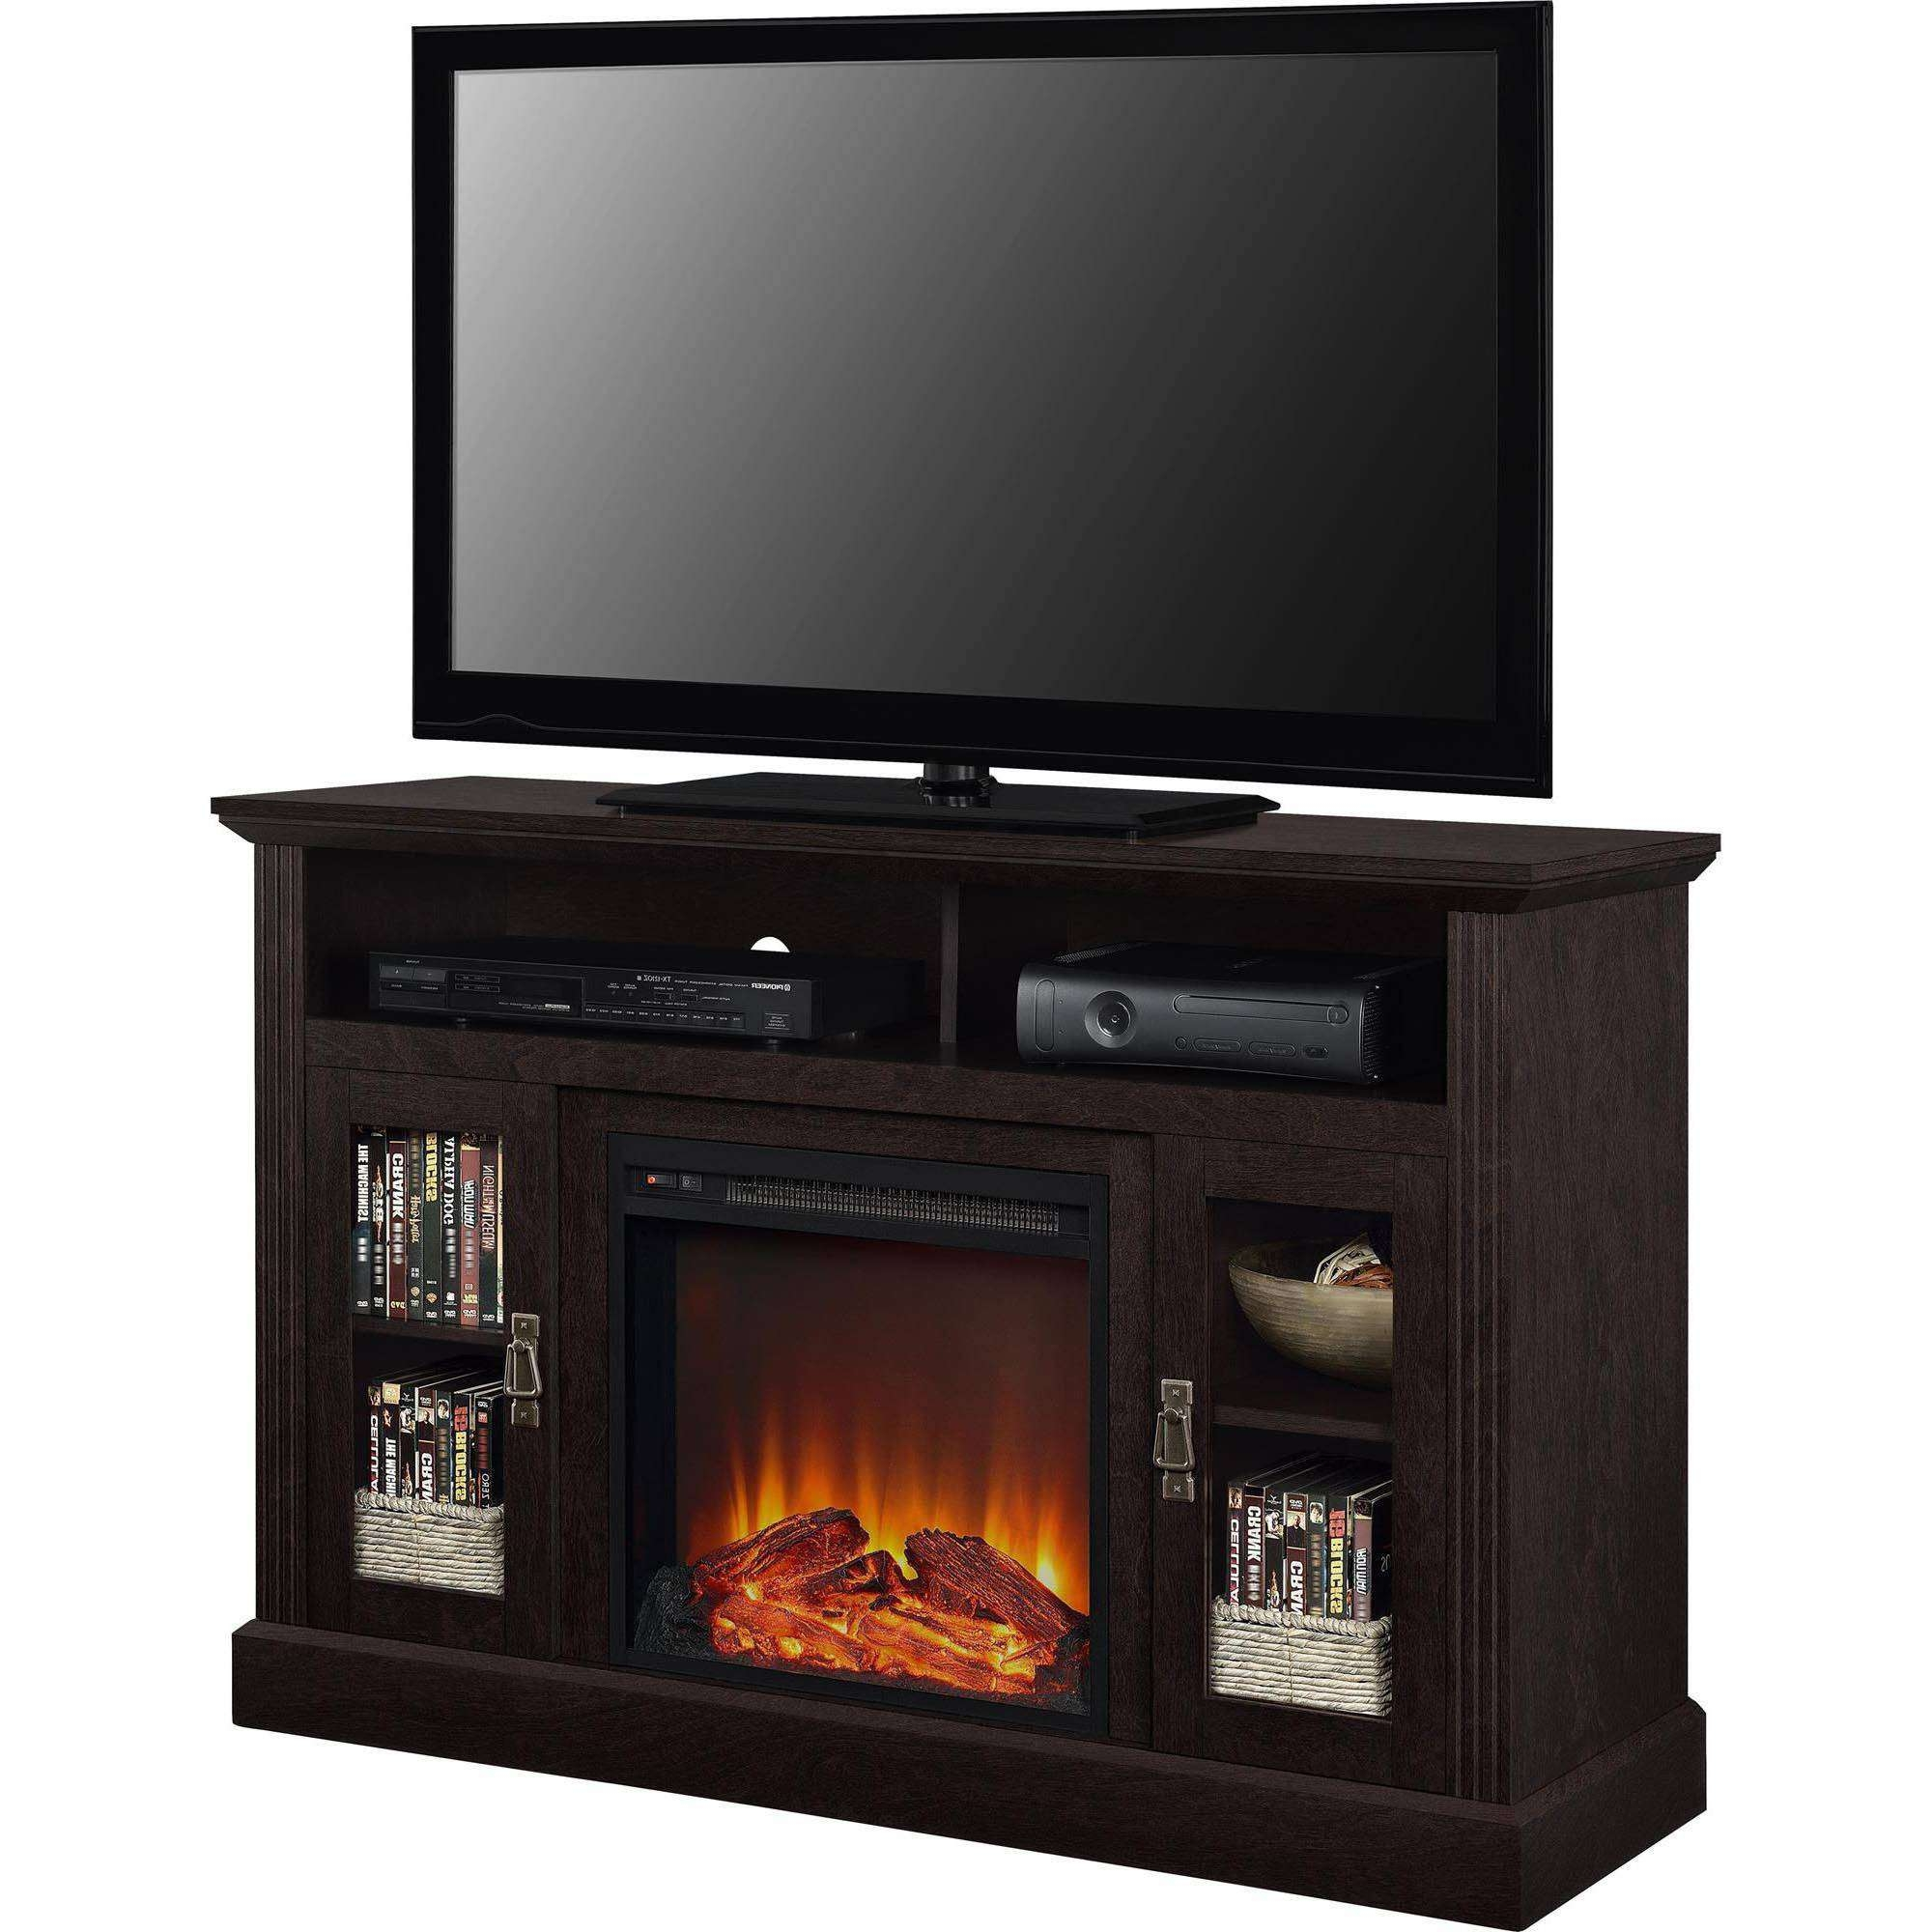 Fireplace Tv Stands – Walmart For 50 Inch Fireplace Tv Stands (View 7 of 15)